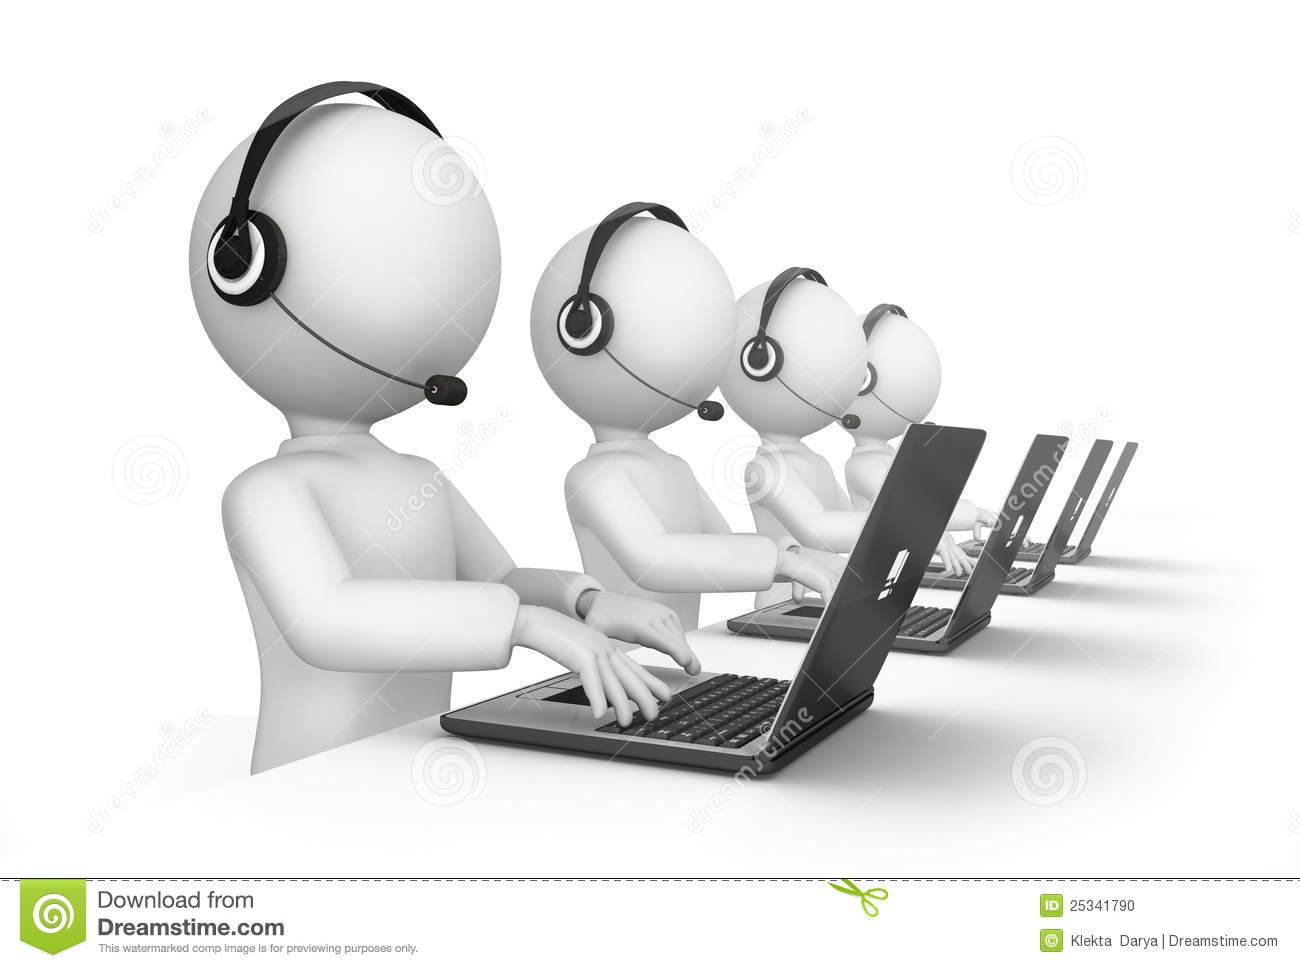 Clipart call center.